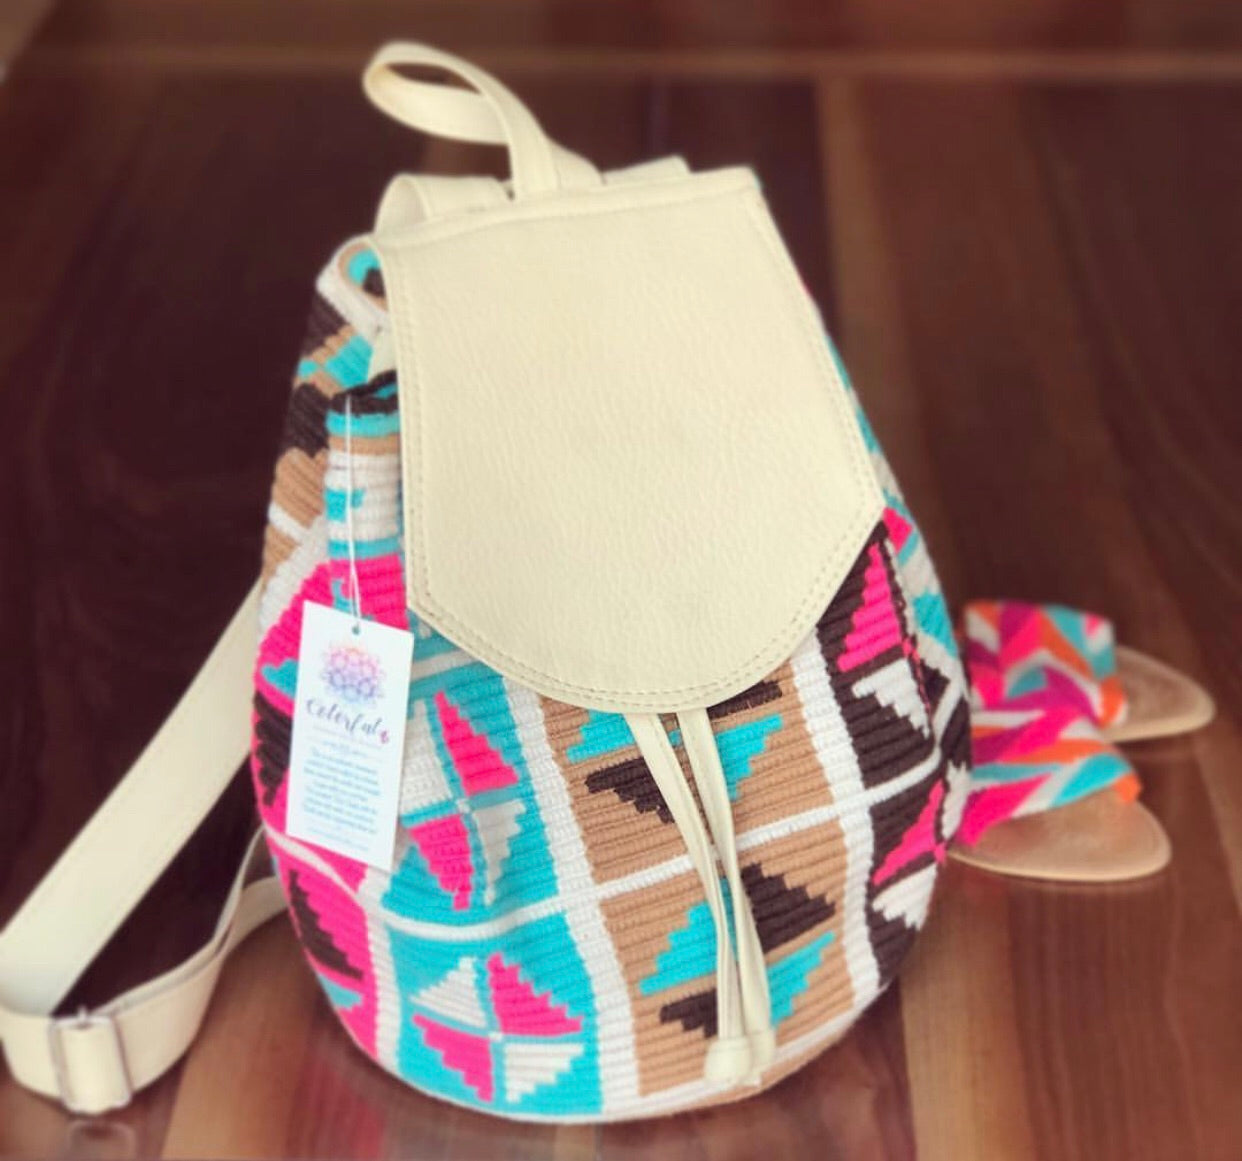 Travel Backpacks | Crochet Bags with Leather